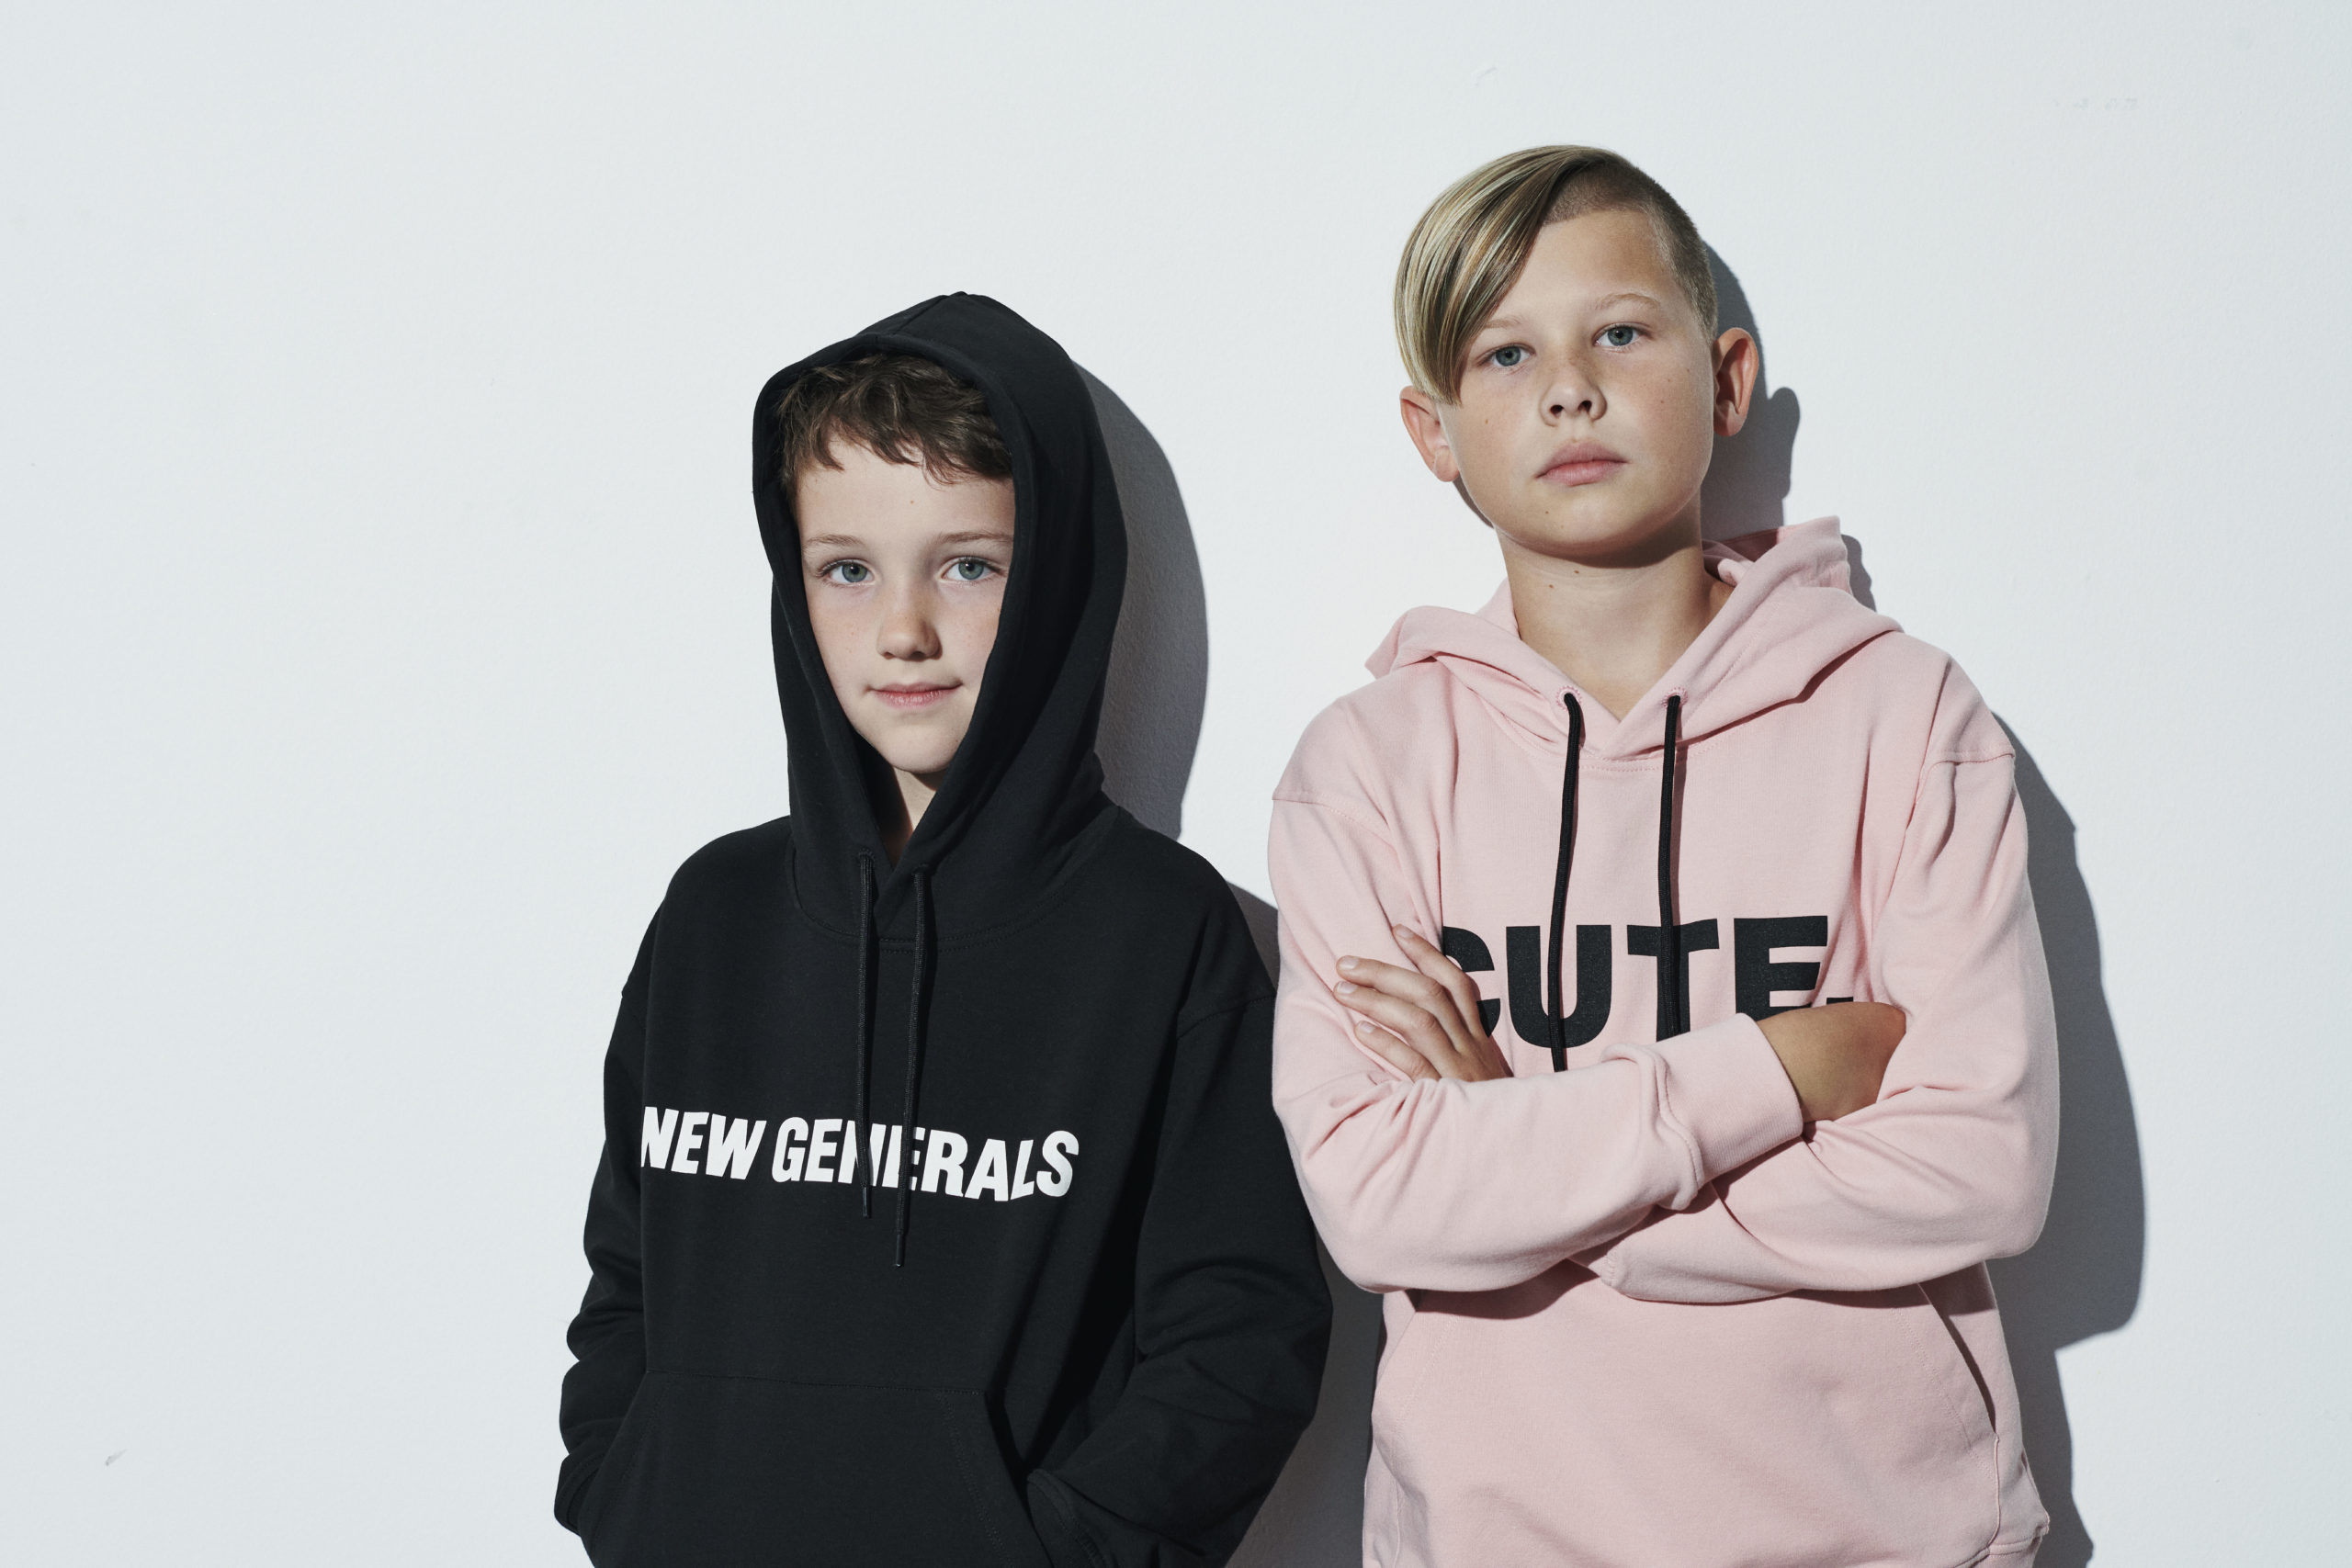 Ahead of its time New Generals was initially launched in 2009 with an ethical ethos